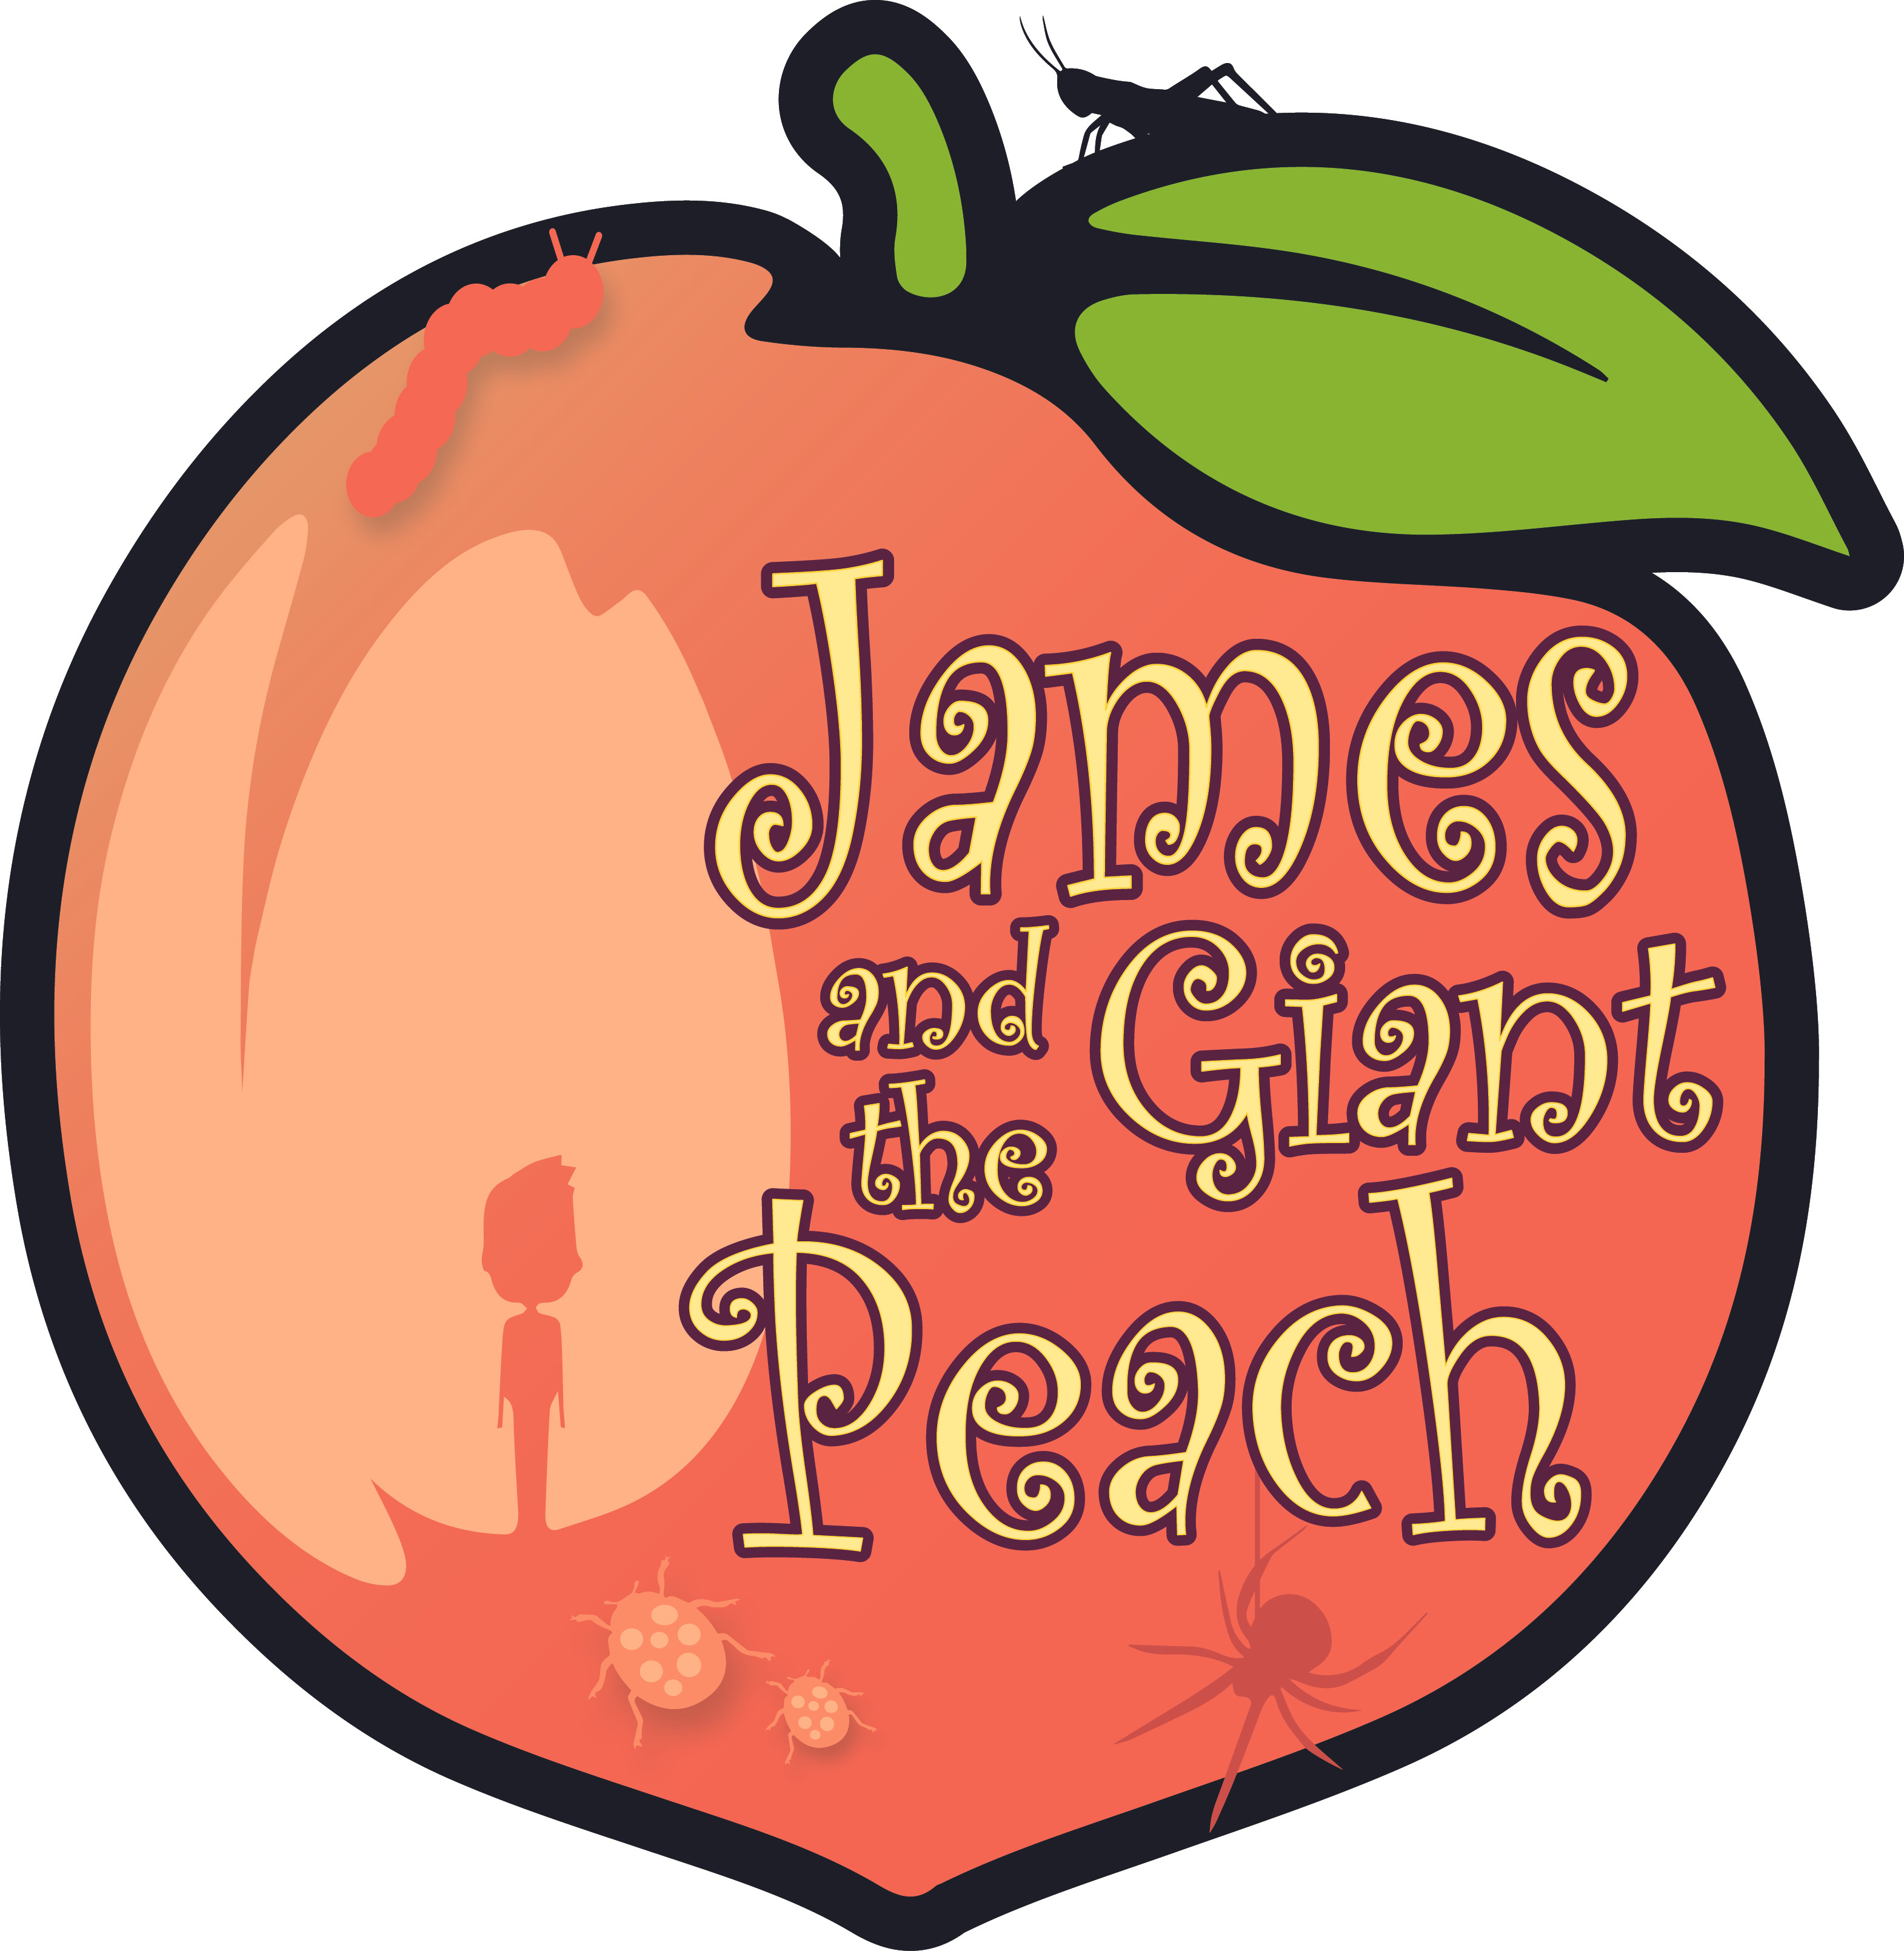 James/Peach Audition Appointment